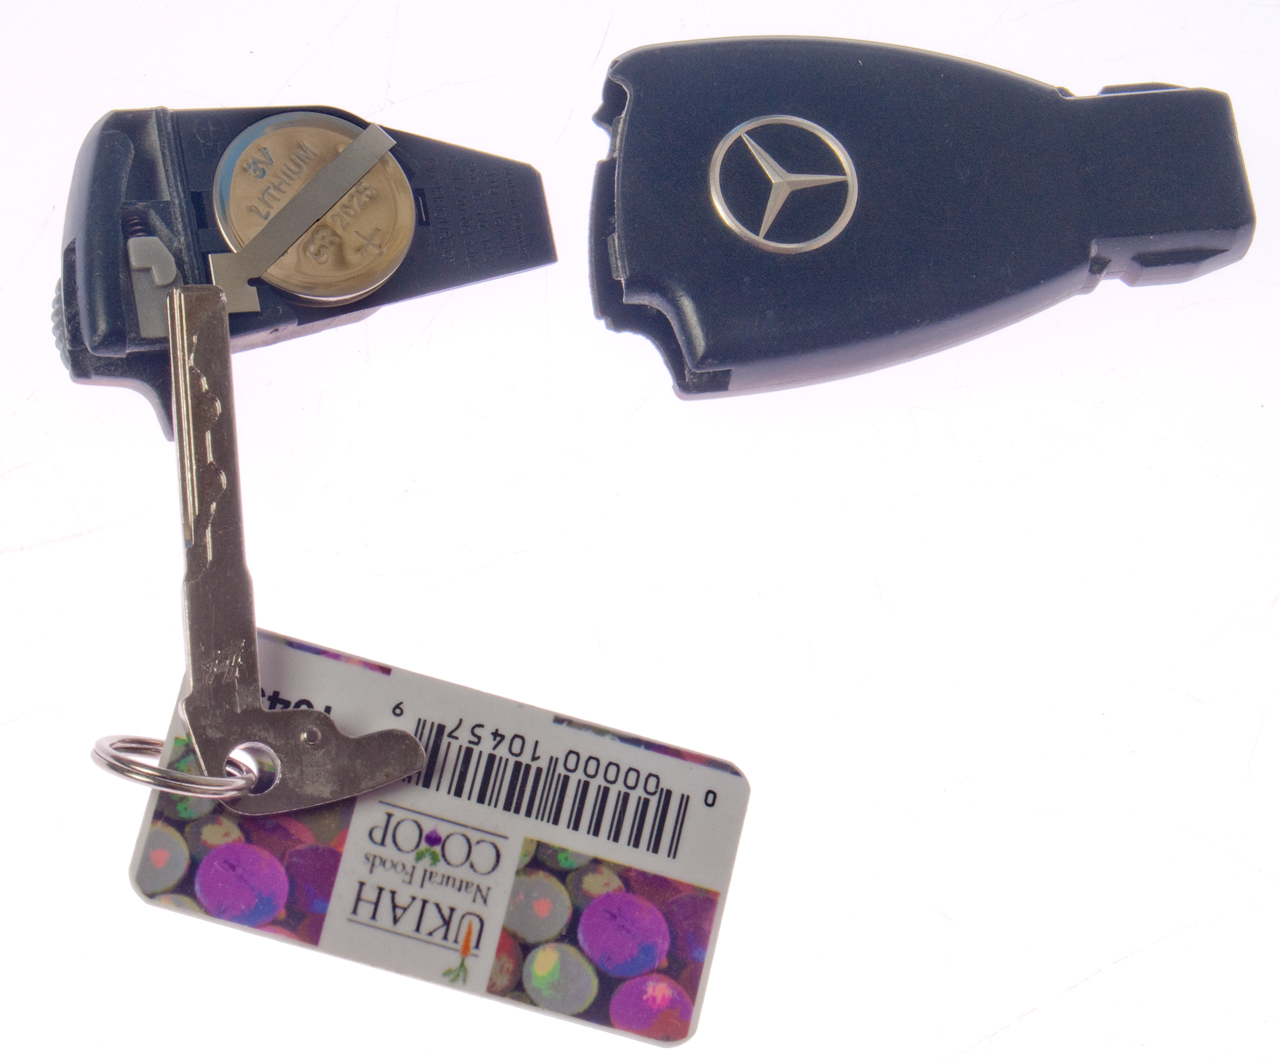 2007 mercedes c230 key battery replacement for How to change mercedes benz key battery